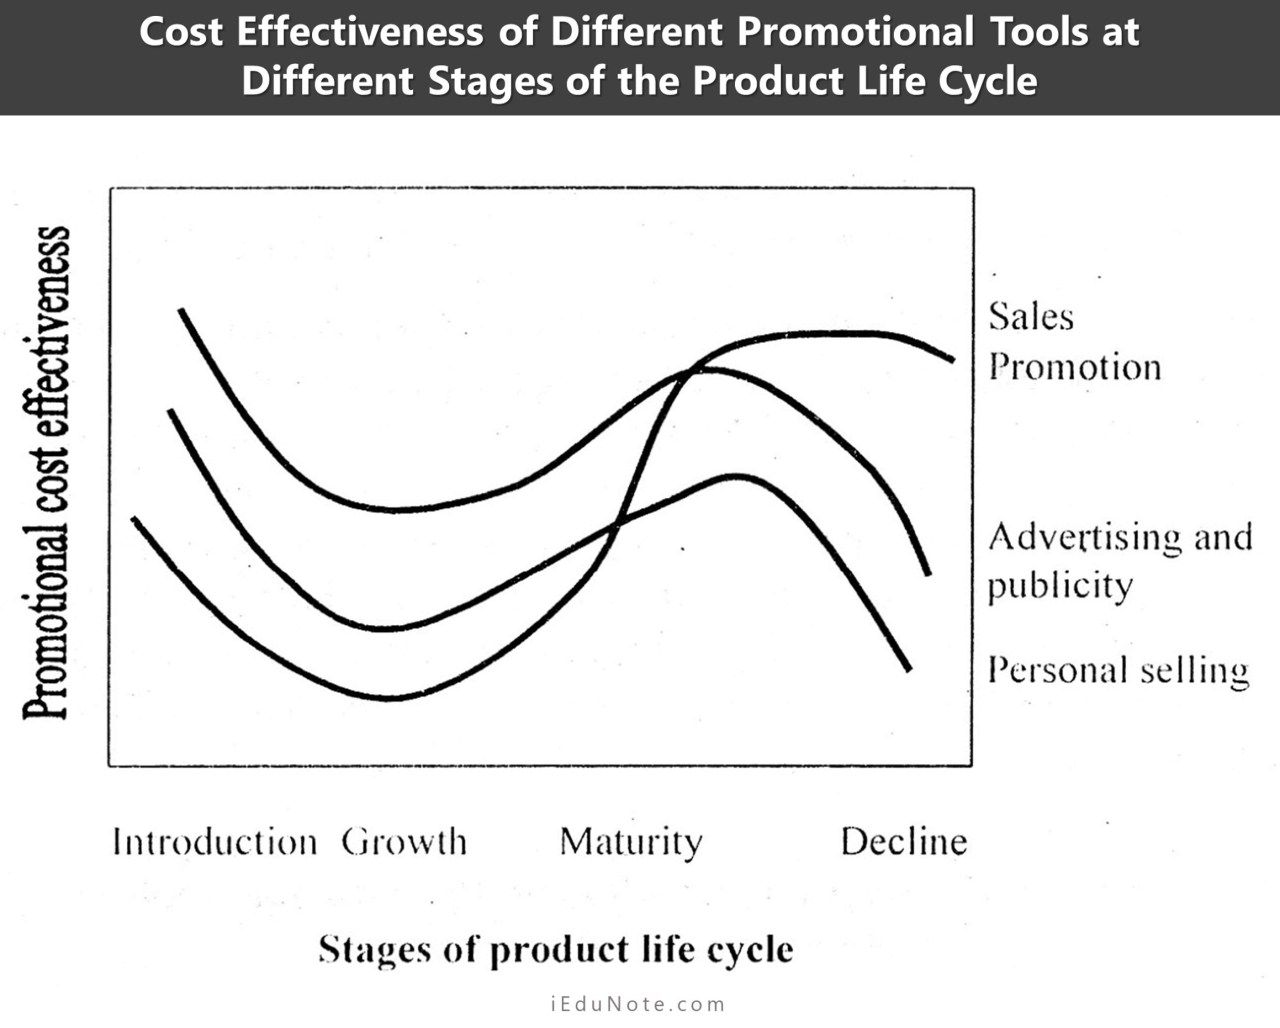 Cost-Effectiveness of Different Promotional Tools at Different Stages of the Product Life Cycle